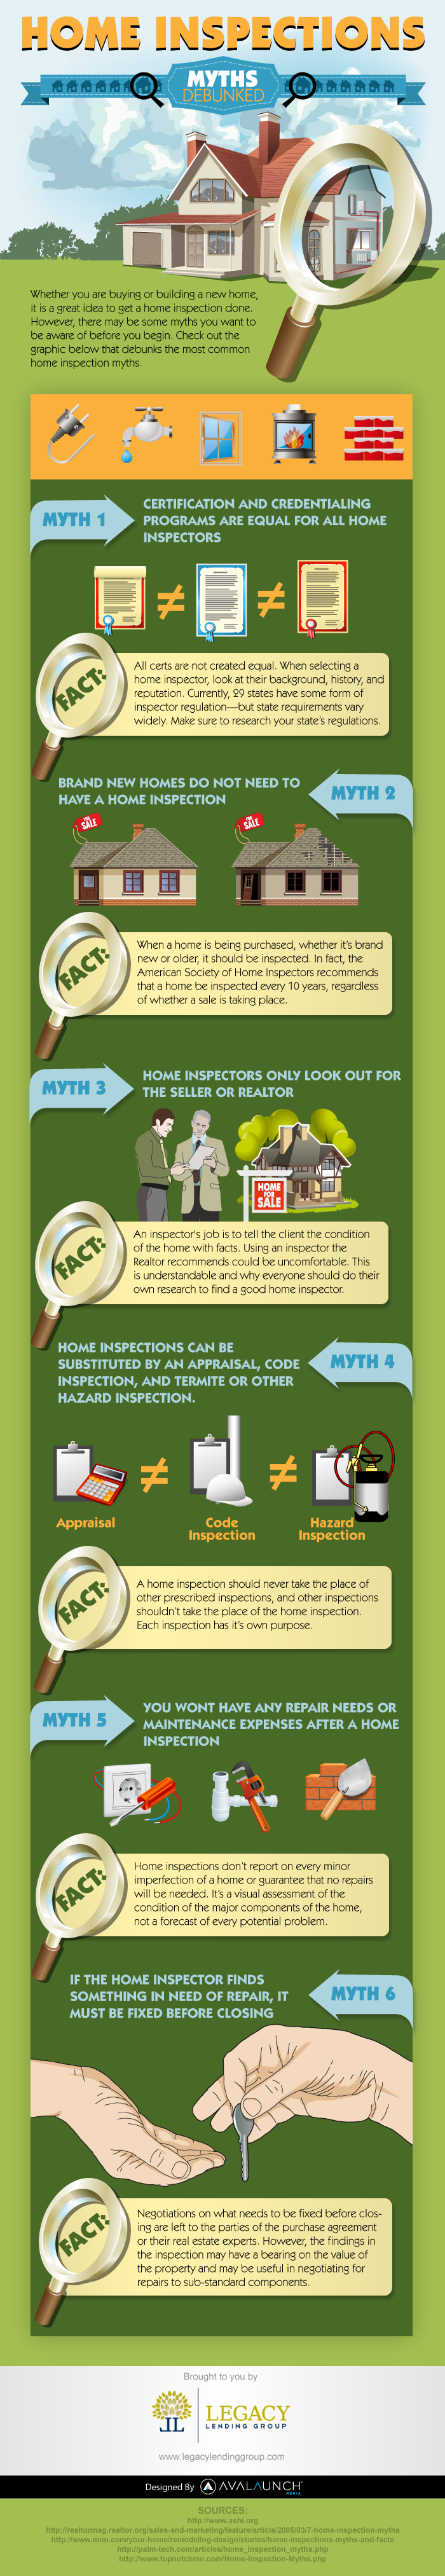 Home Inspection Myths